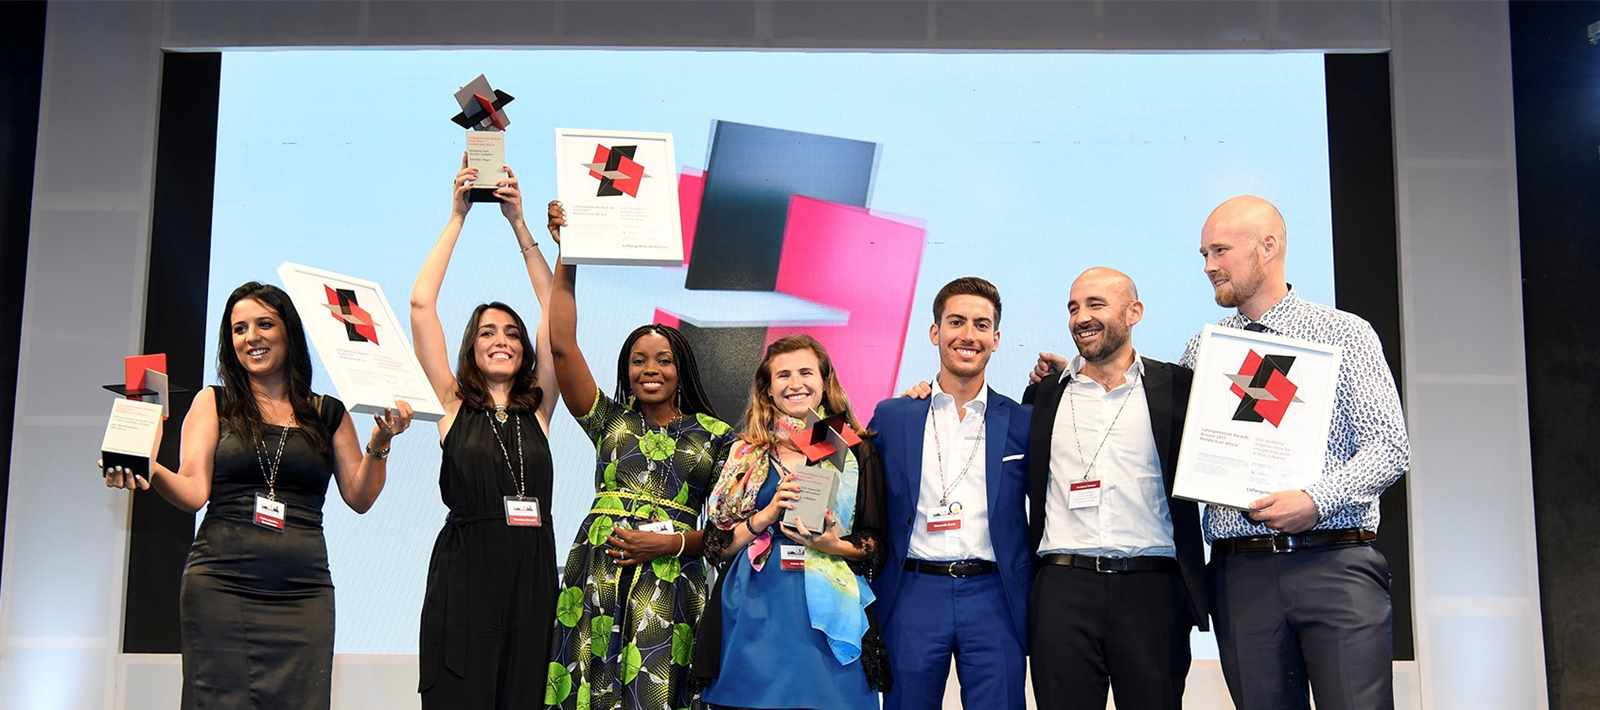 LafargeHolcim Awards 2017 for Africa Middle East, main prize winners (l-r): Fatima-azzahra …